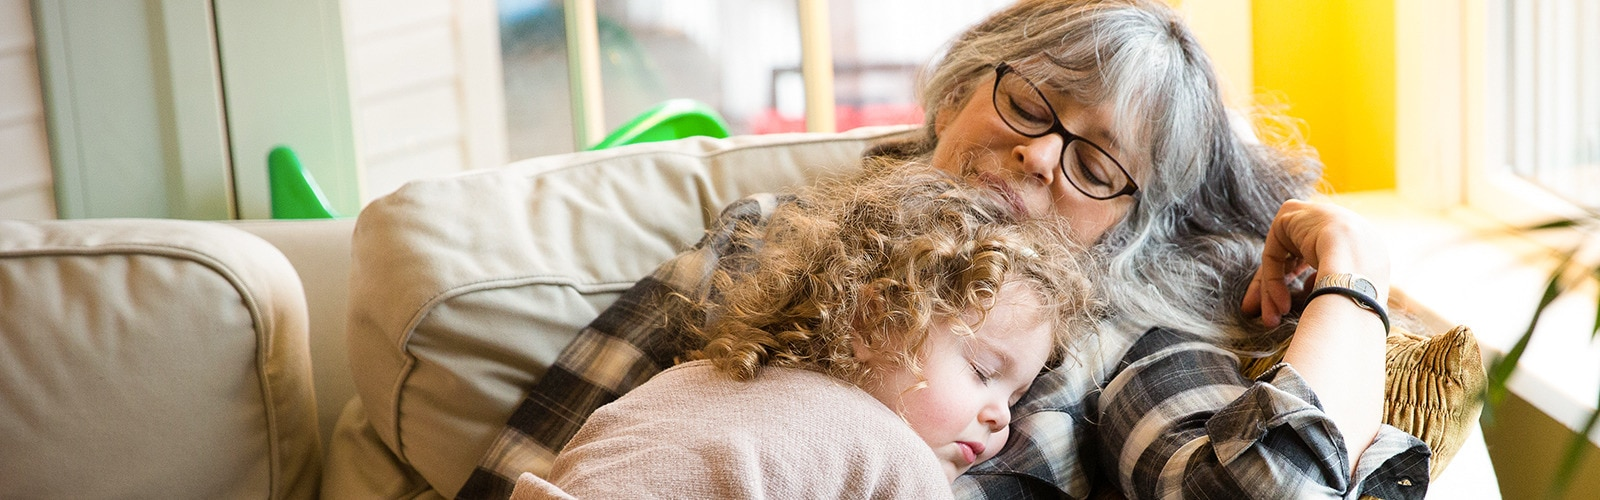 Little girl with curly hair sleeping on elderly woman with glasses